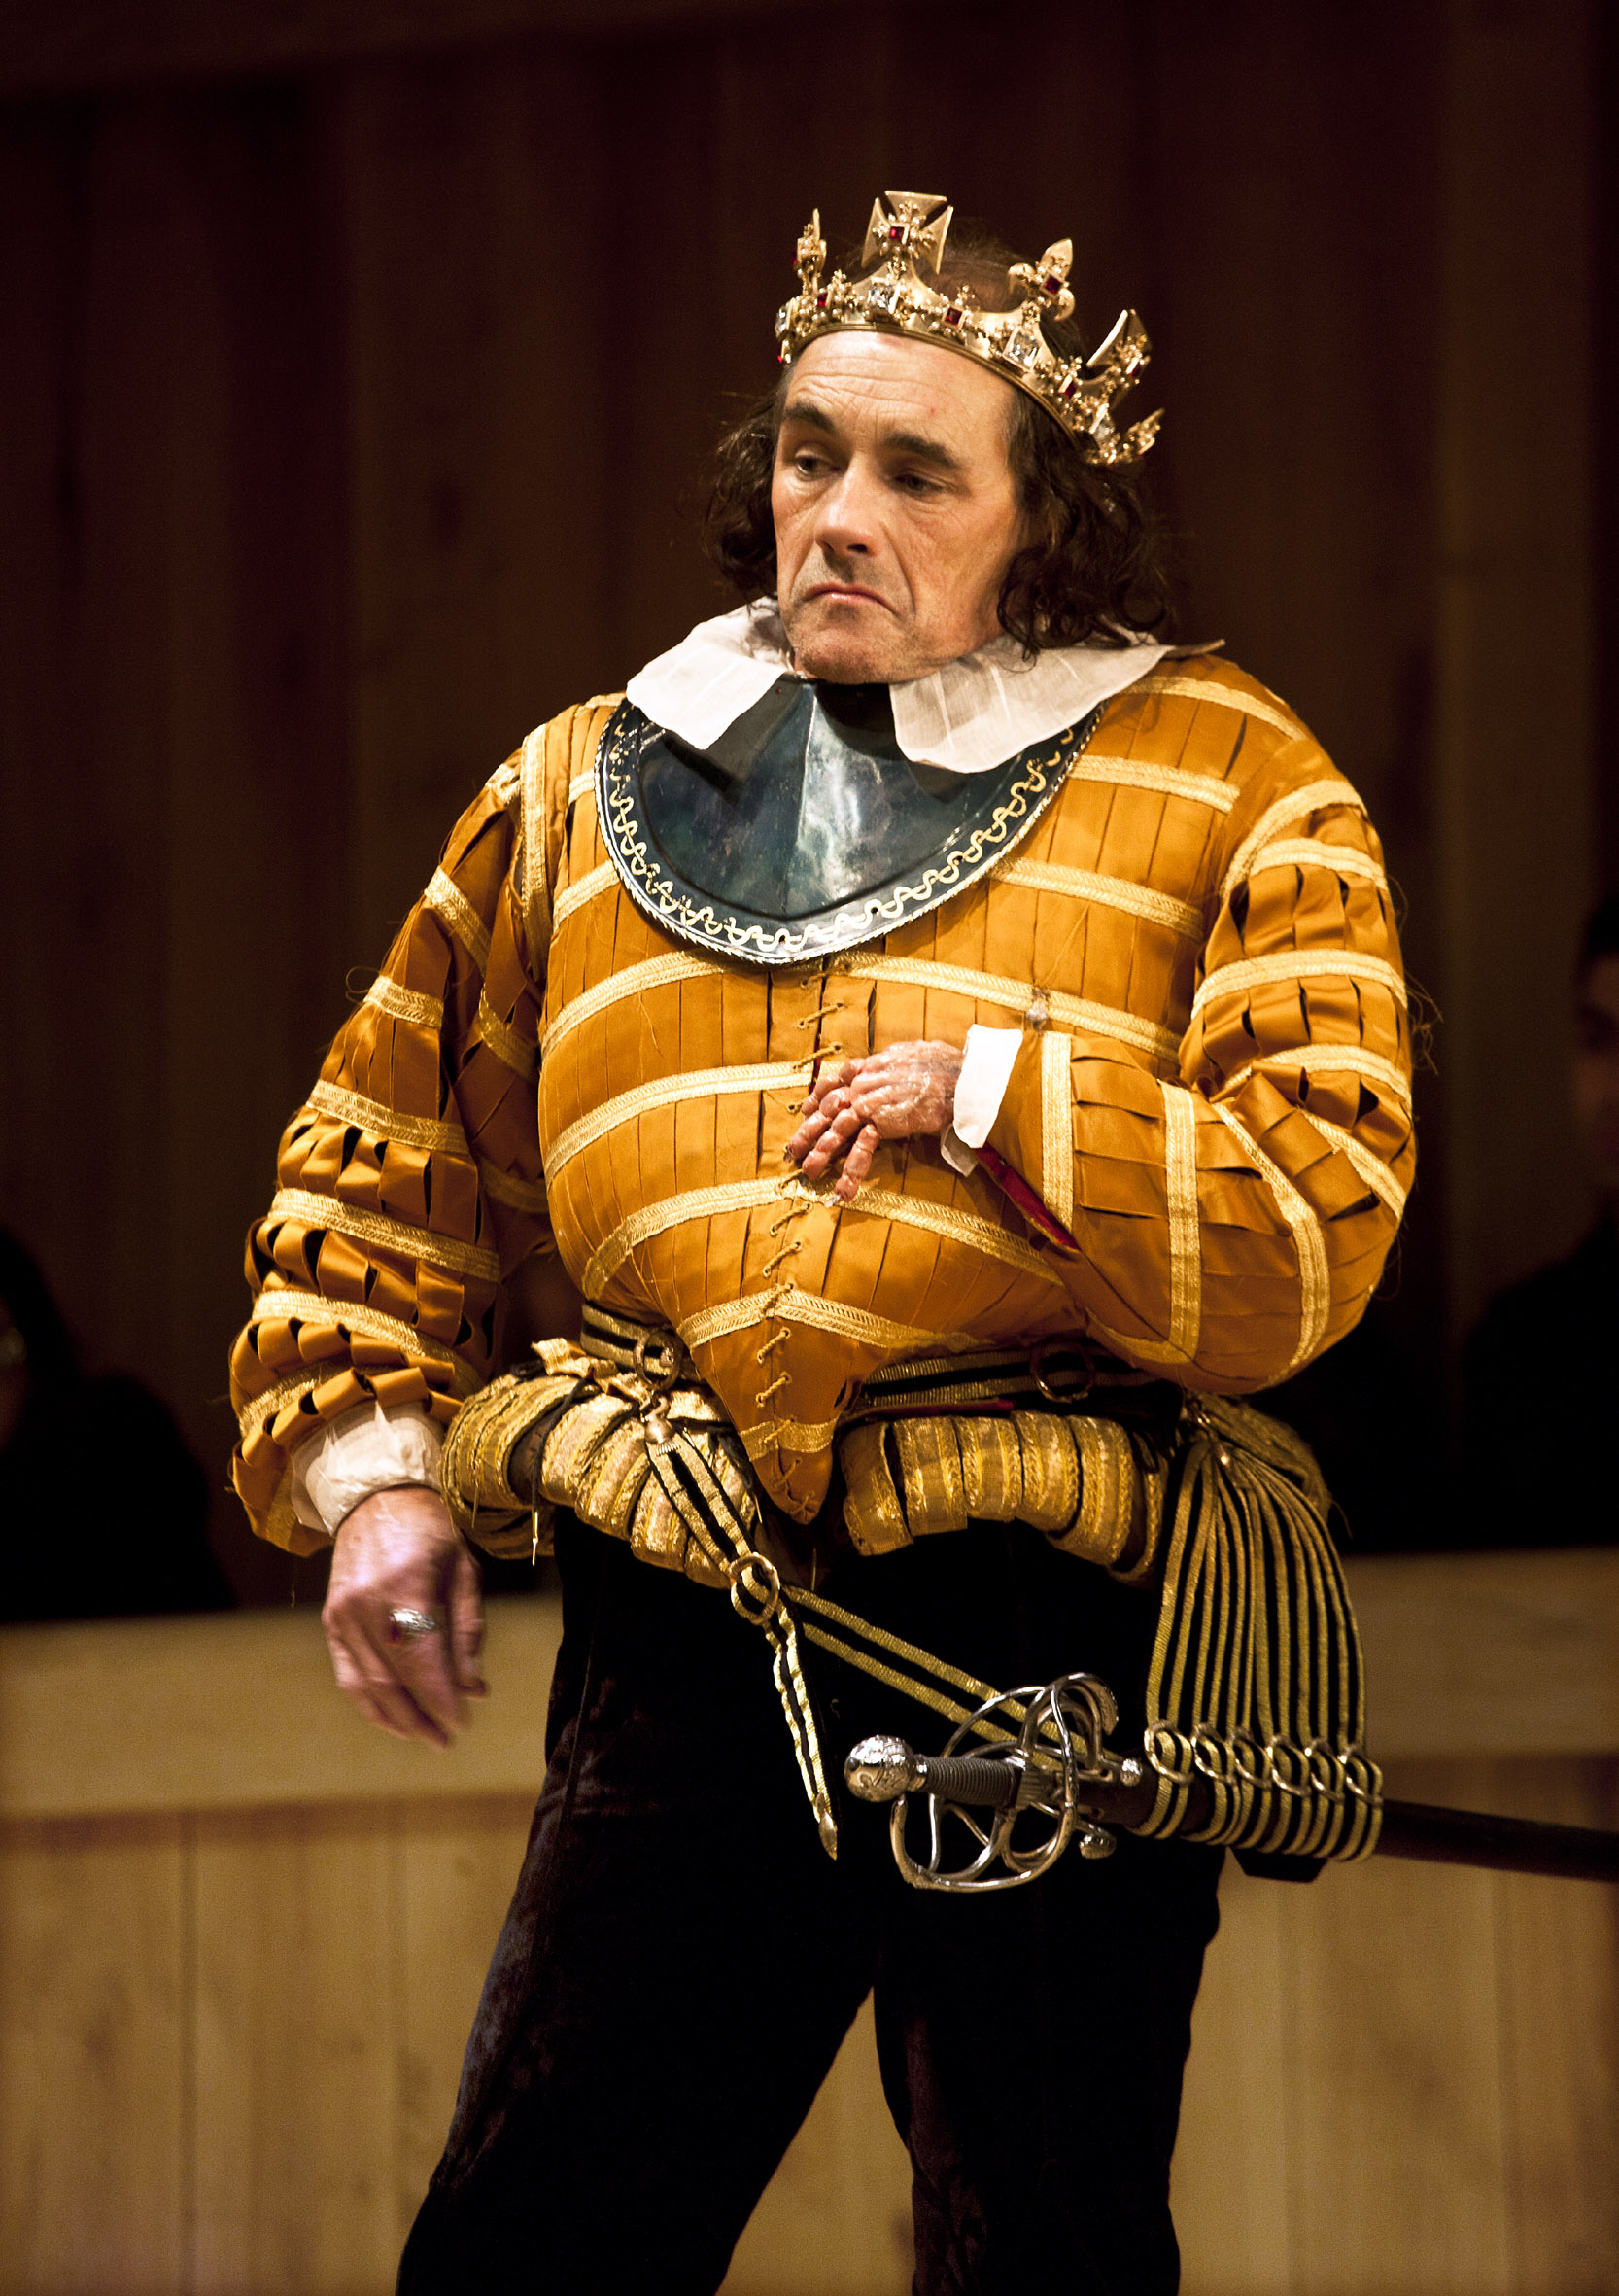 what richard iii did was wrong What did richard iii do bad  william shakespeare's character richard iii in the play of the same name did not  he was a good king however the mis-reports and shakespeare's story are wrong .